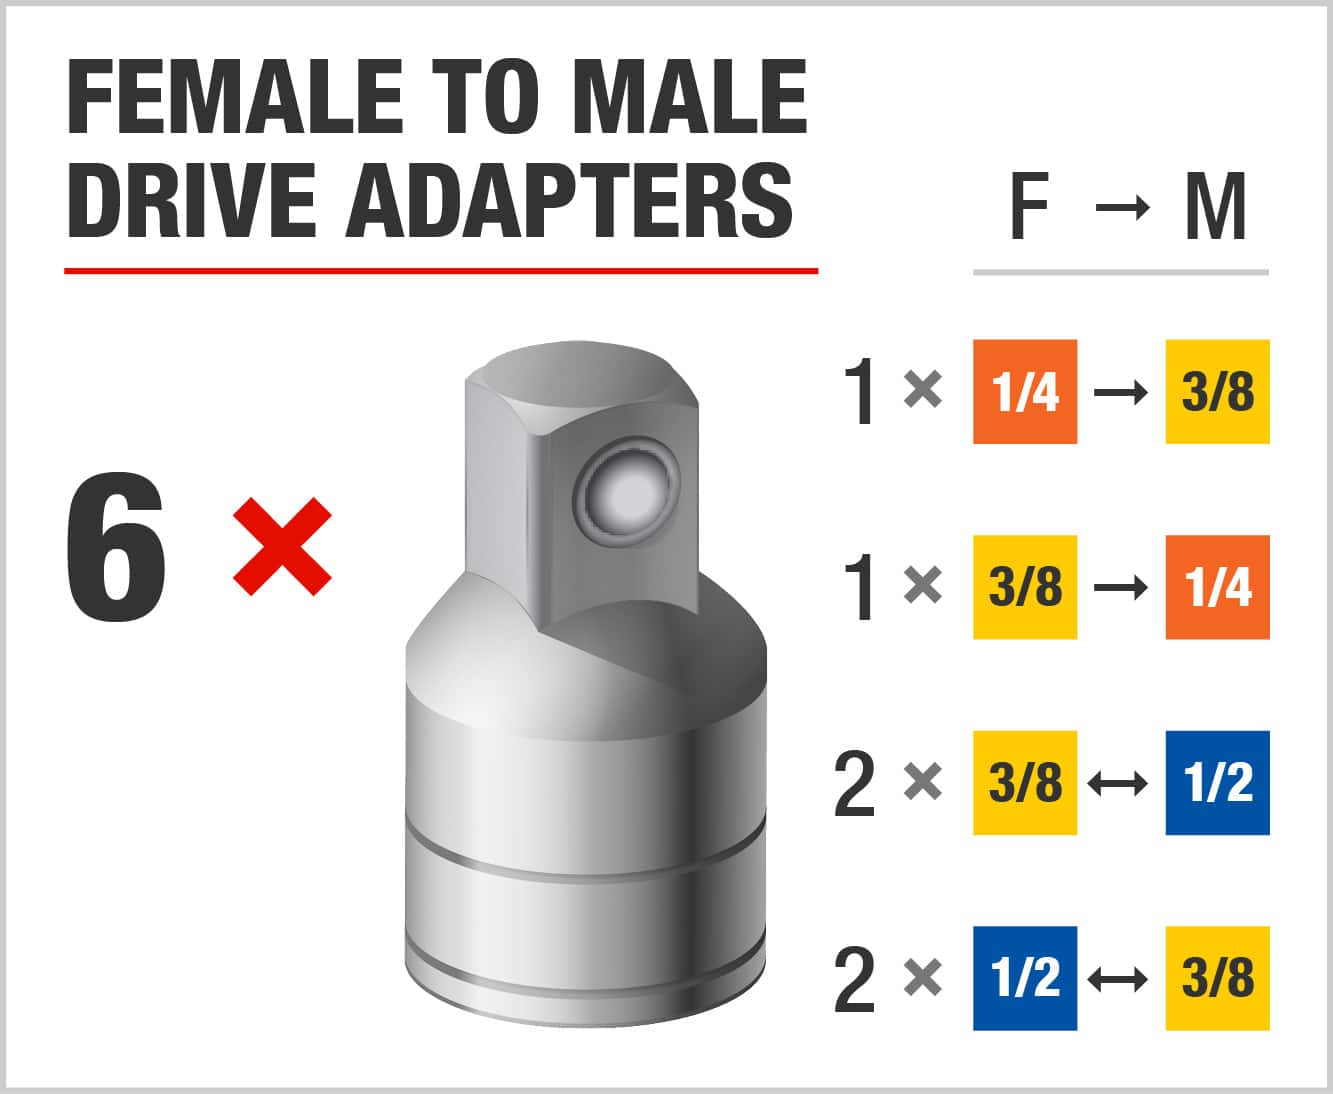 Female to Male Drive Adapters